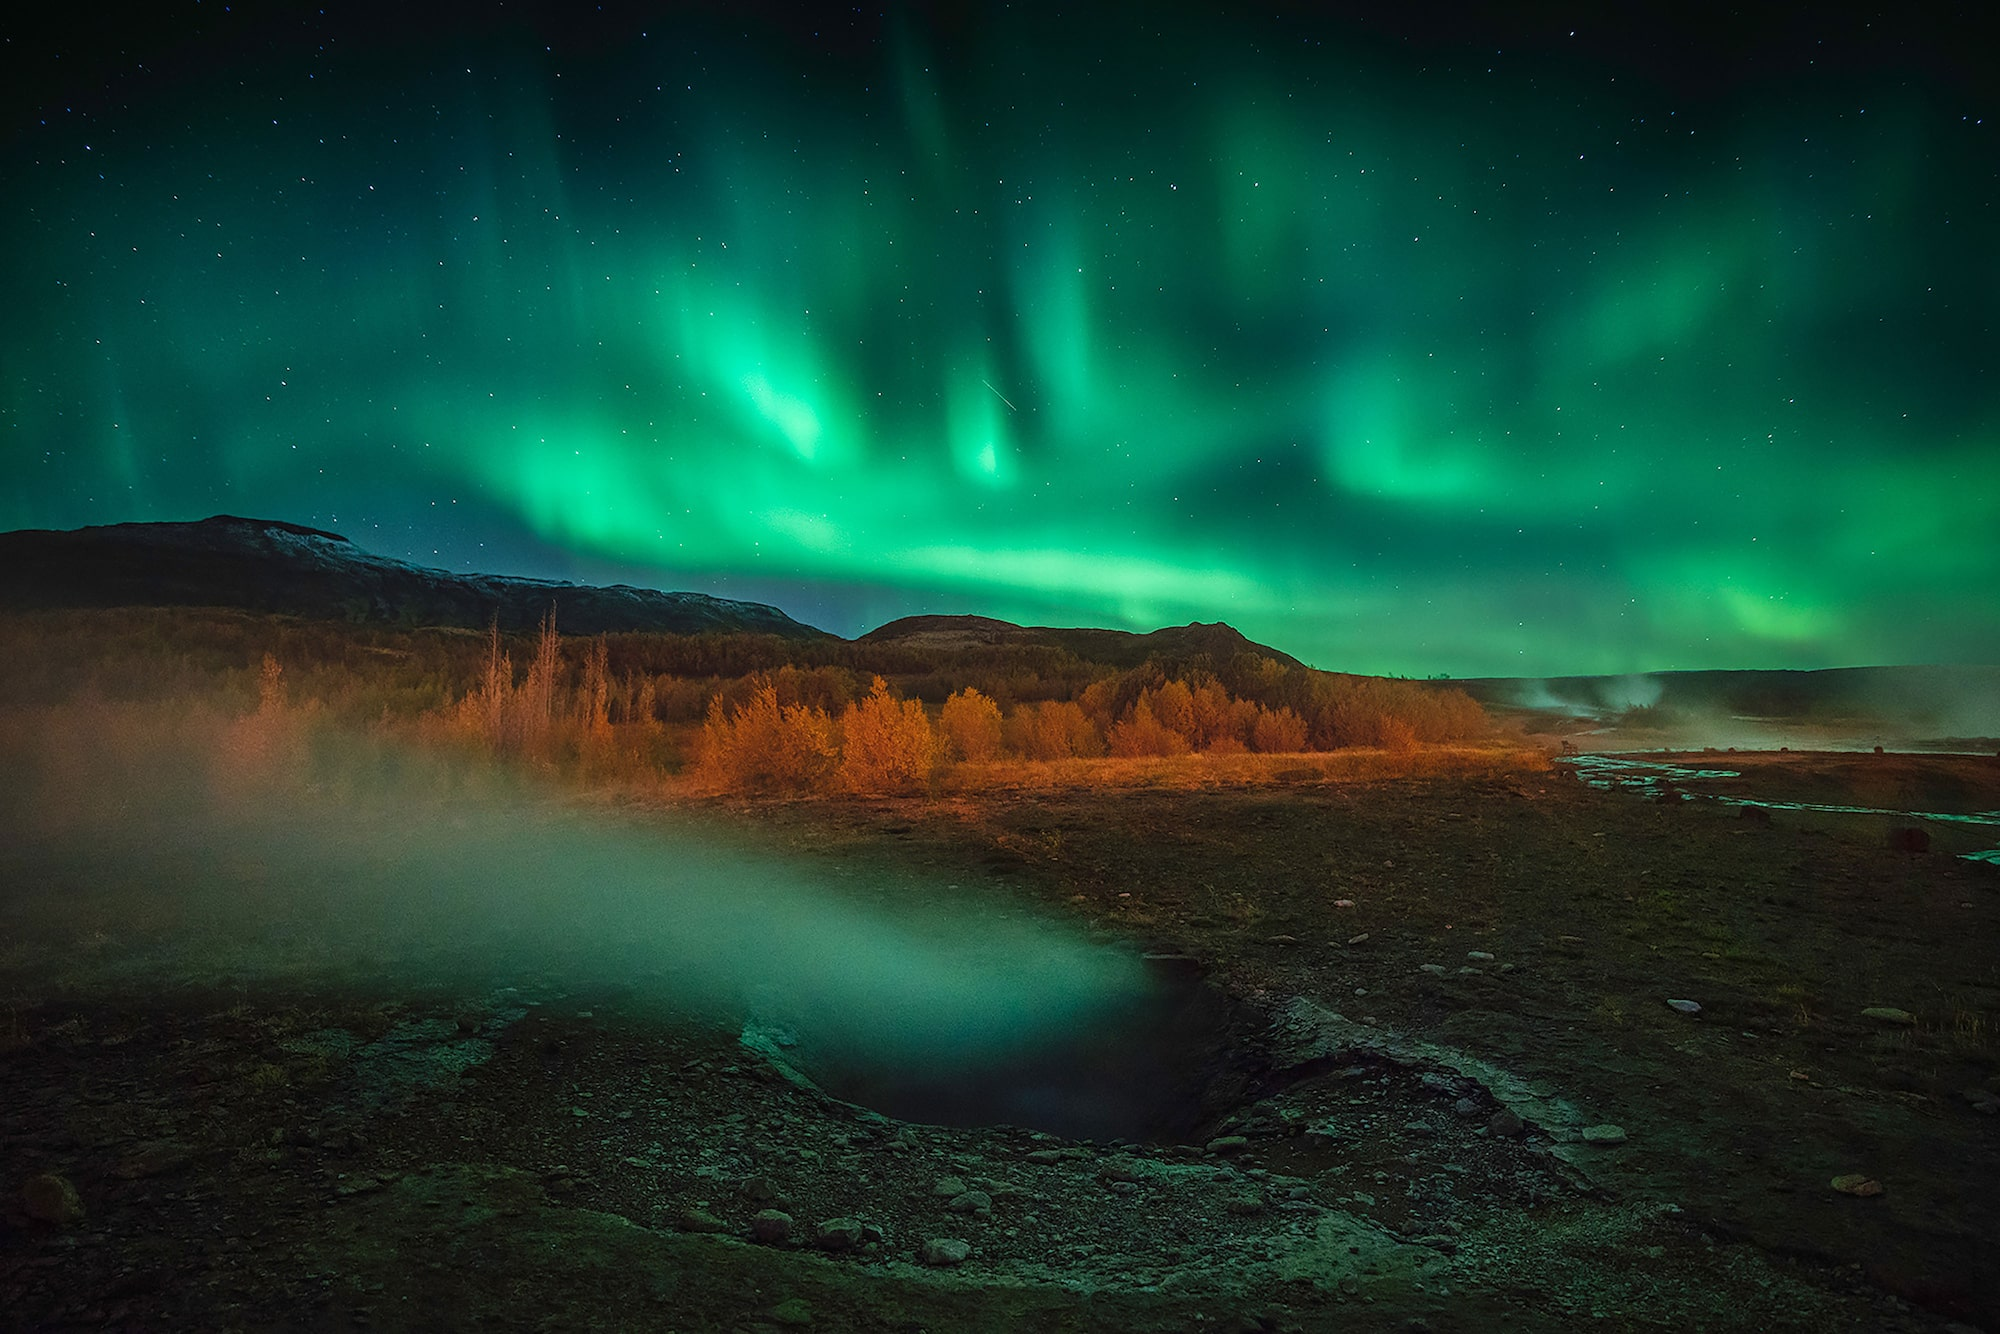 iurie belegurschi sony alpha 7RIII the aurora borealis dances above distant mountains while a foreground geyser is illuminated green